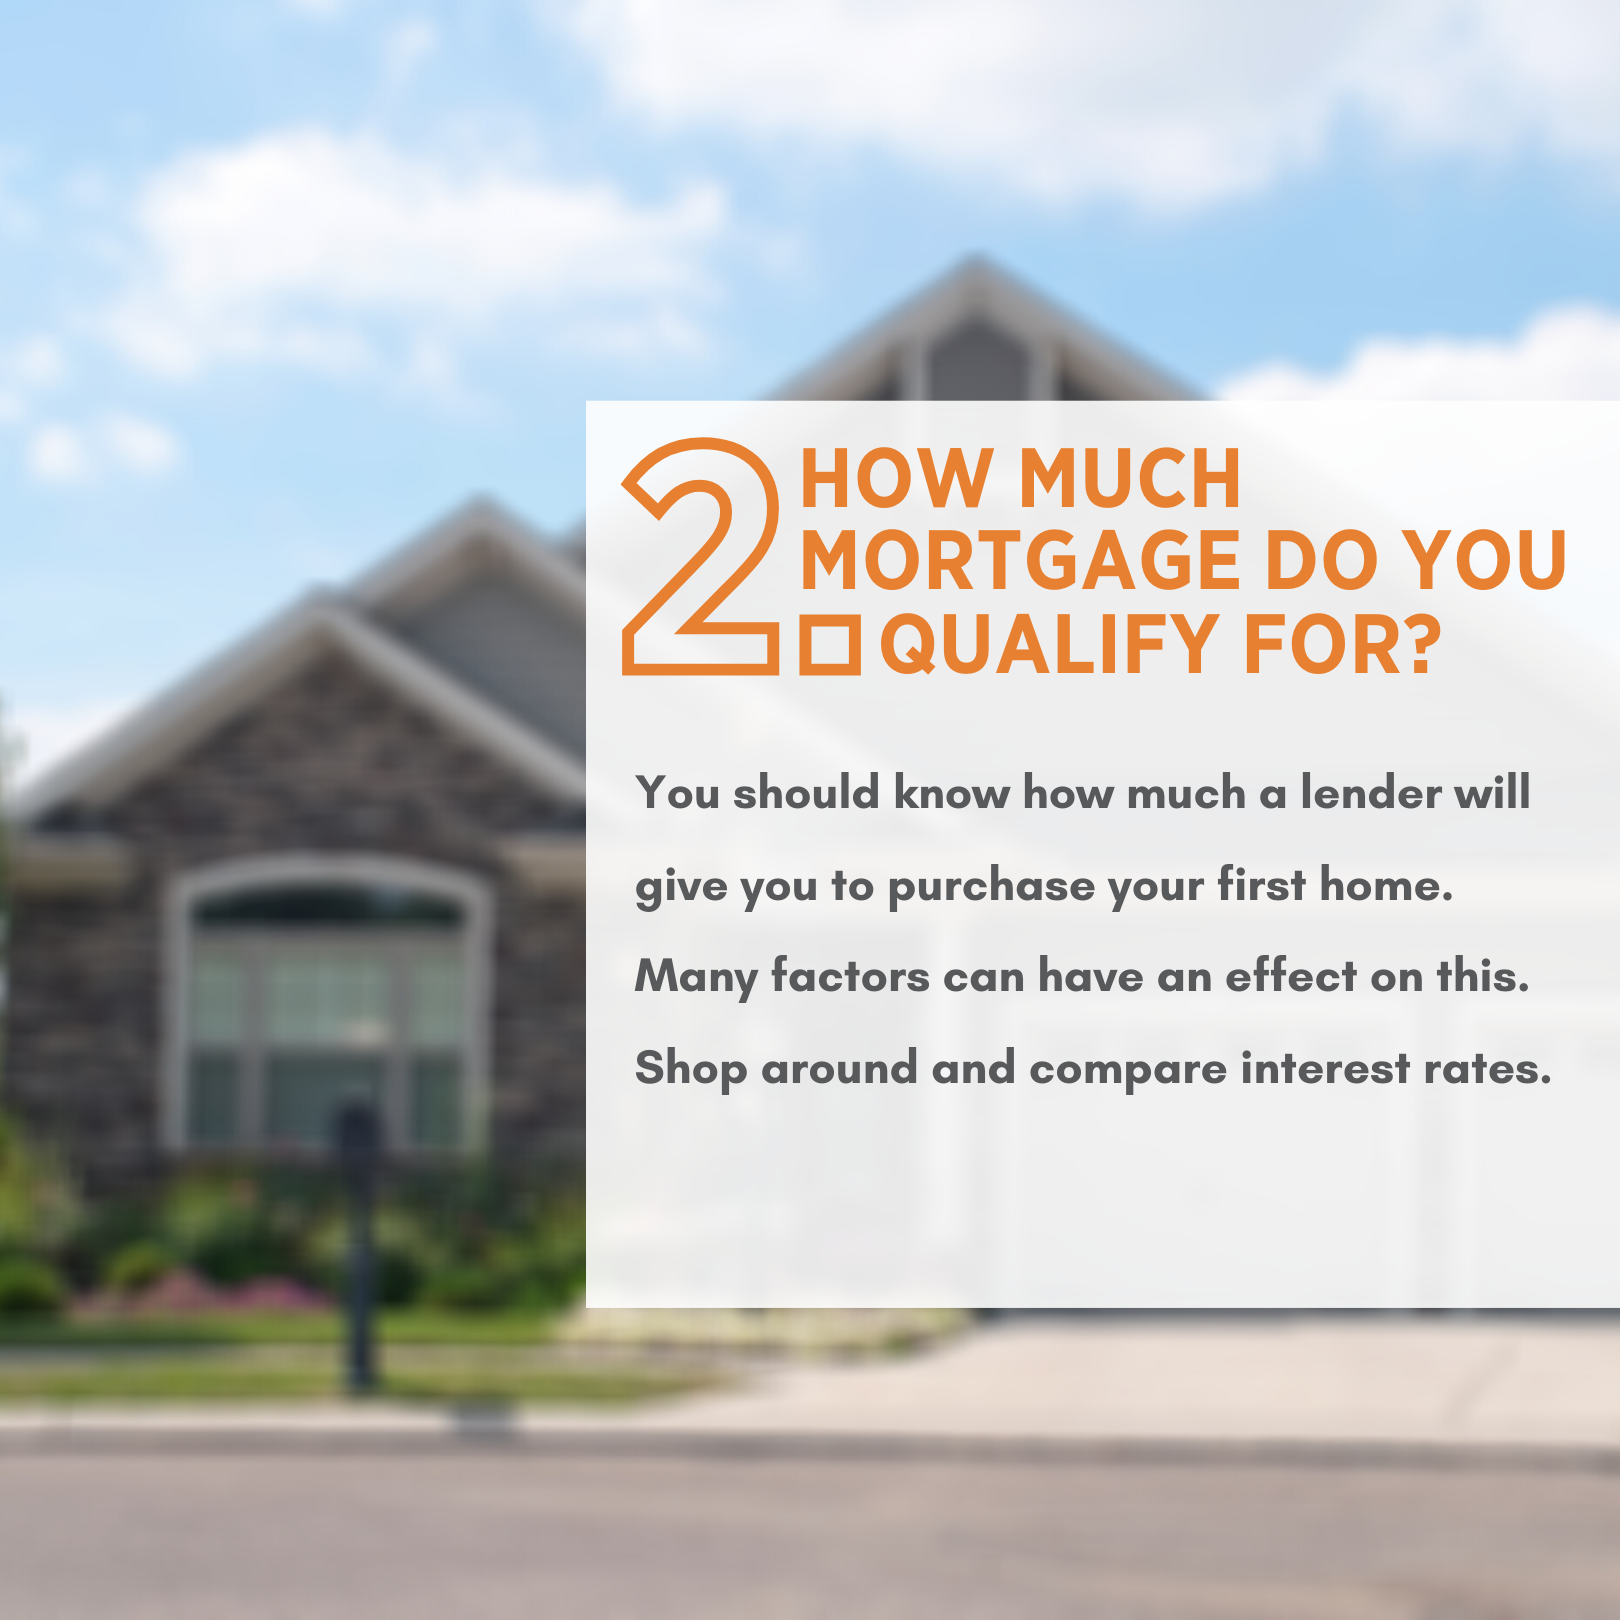 How much mortgage can you qualify for? You should know how much a lender will give you to purchase your first home. Many factors can have an effect on this. Shop around and compare interest rates.